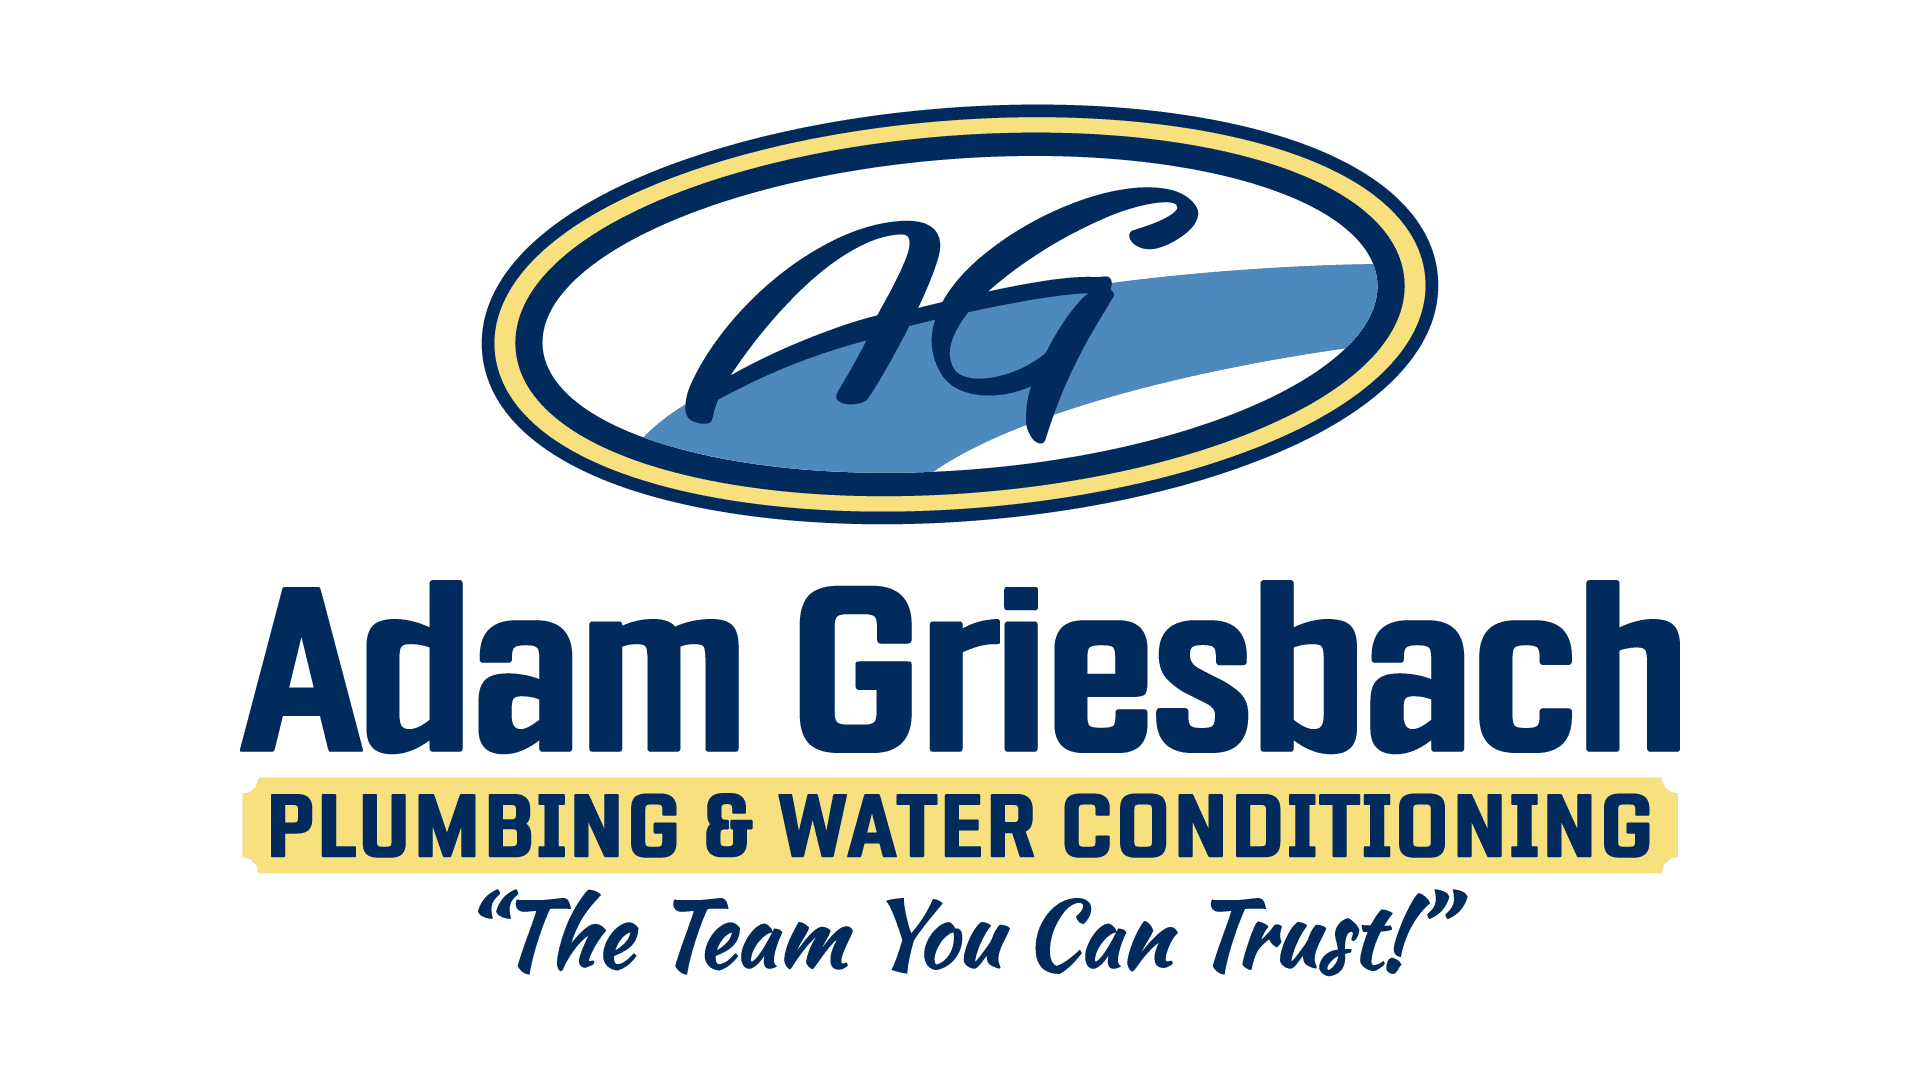 Adam Griesbach Plumbing & Water Conditioning, logo